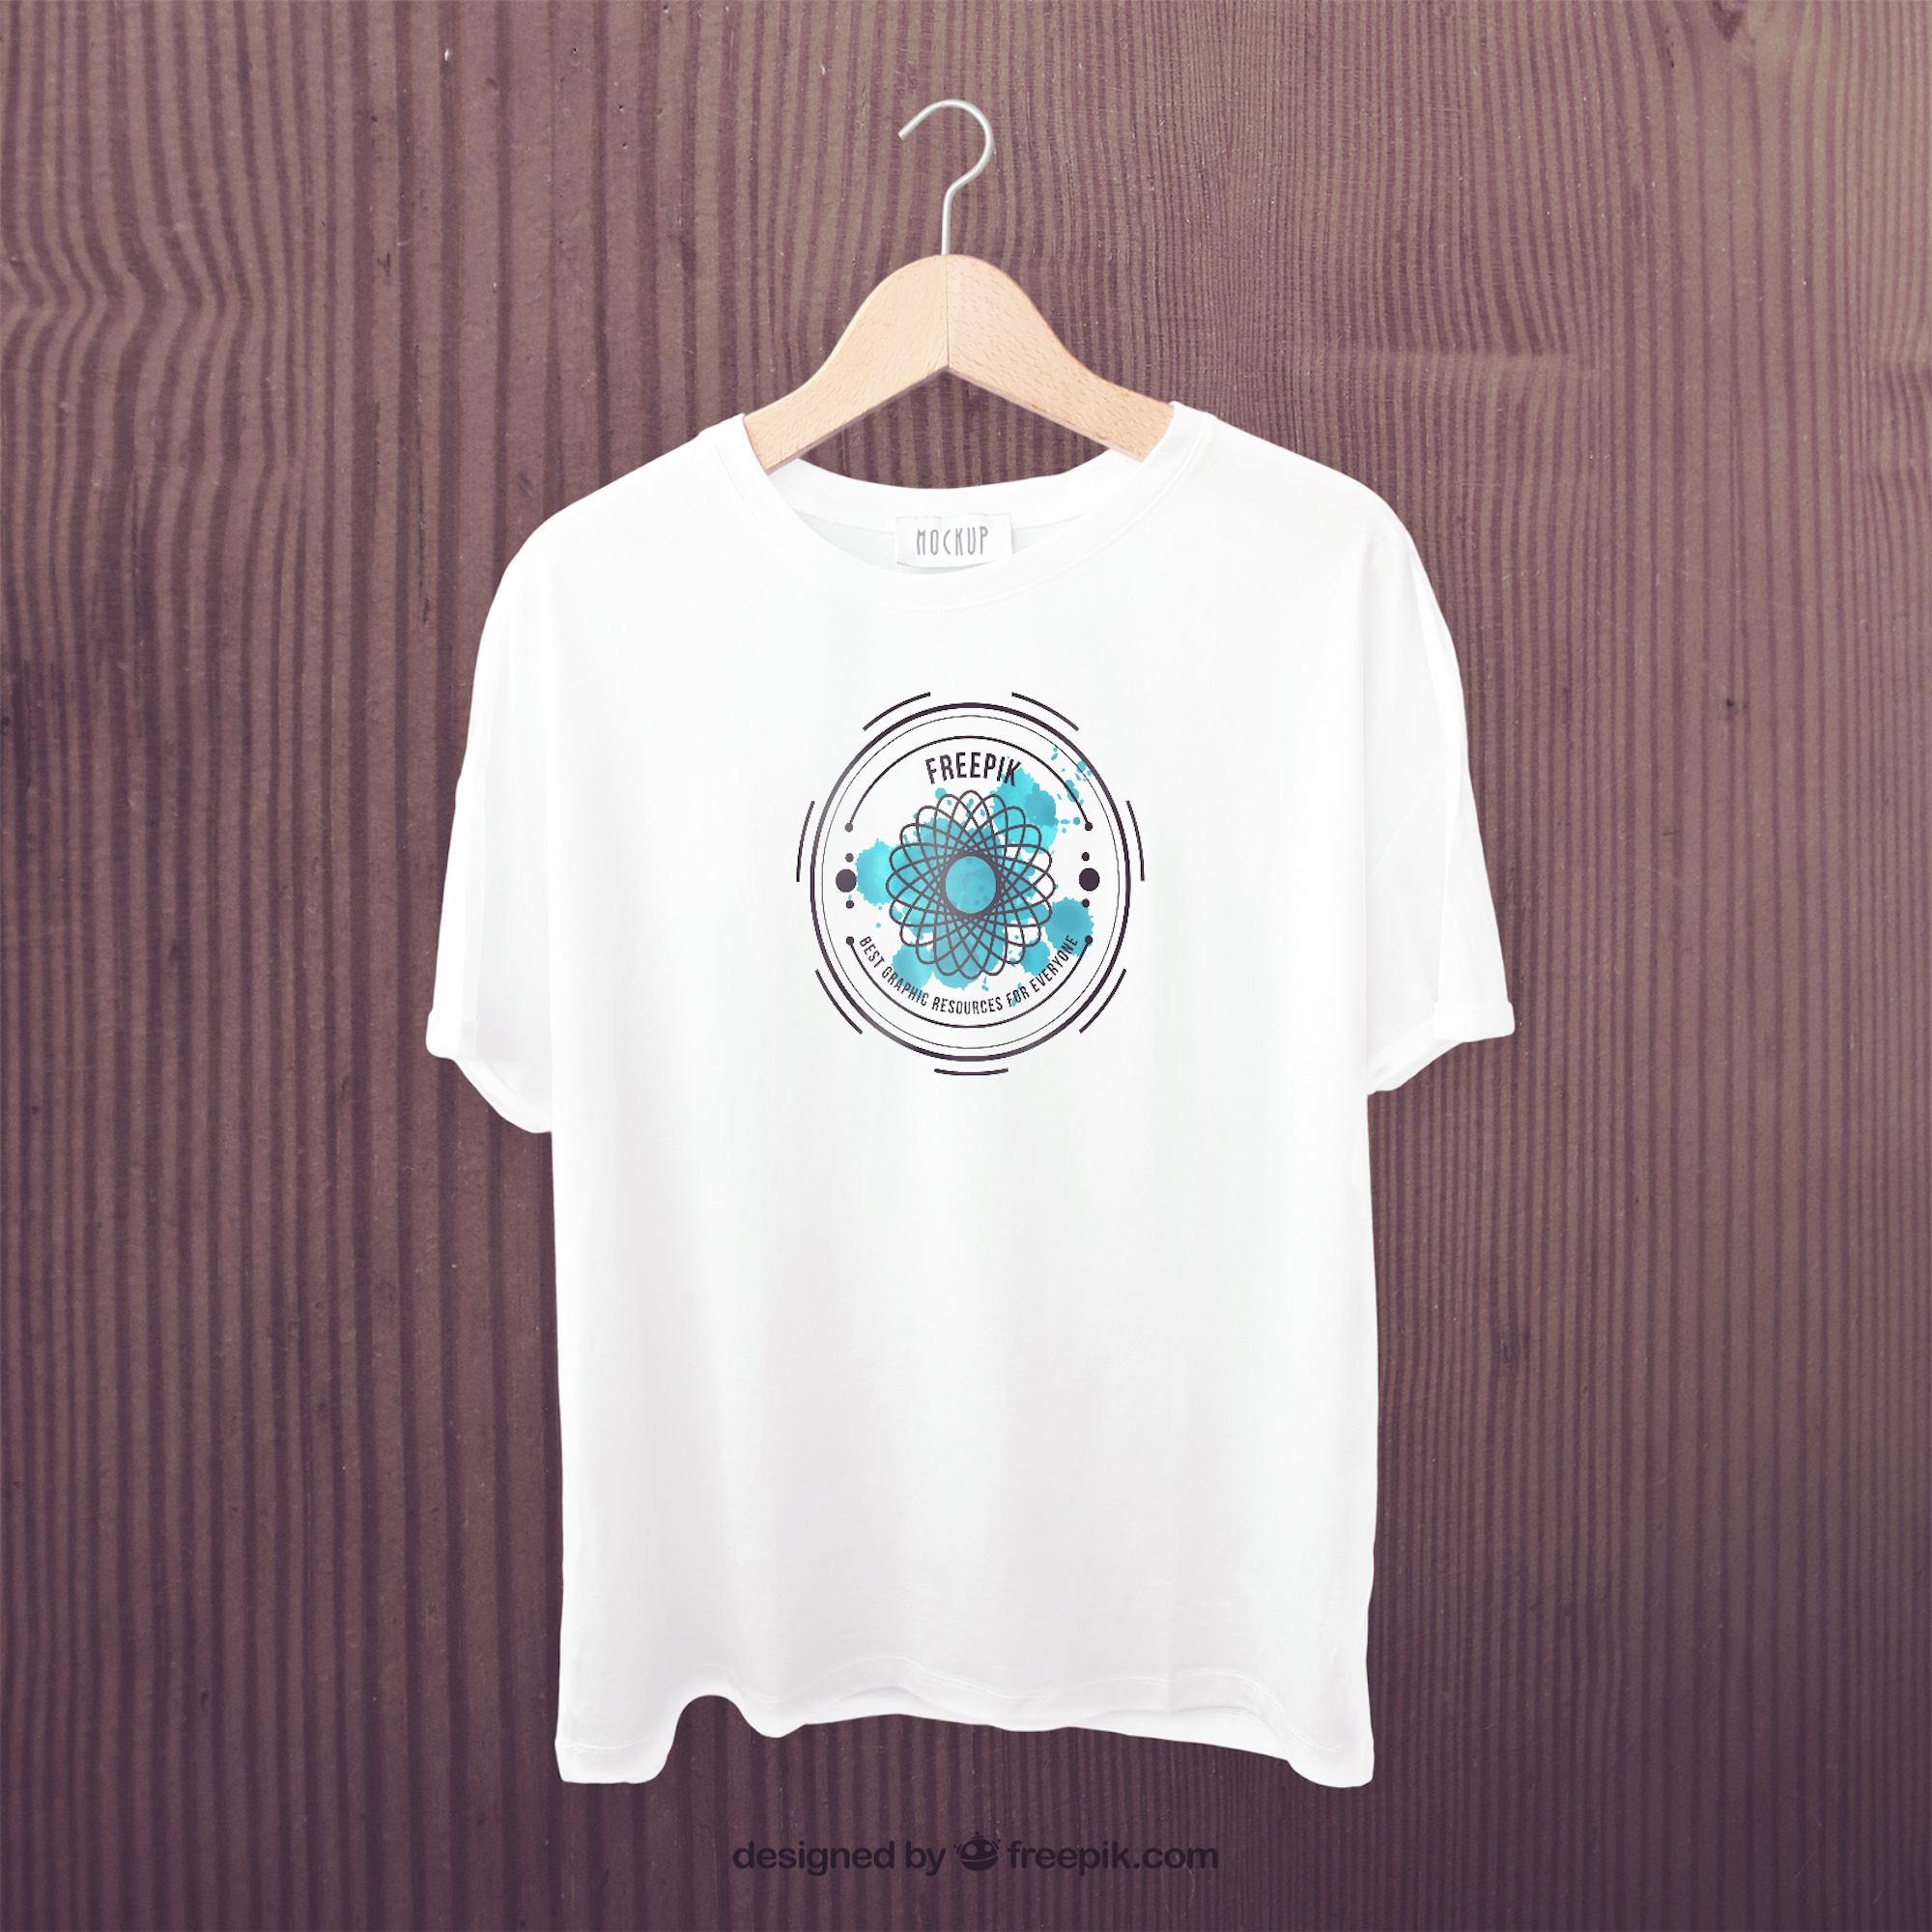 White t-shirt front mockup